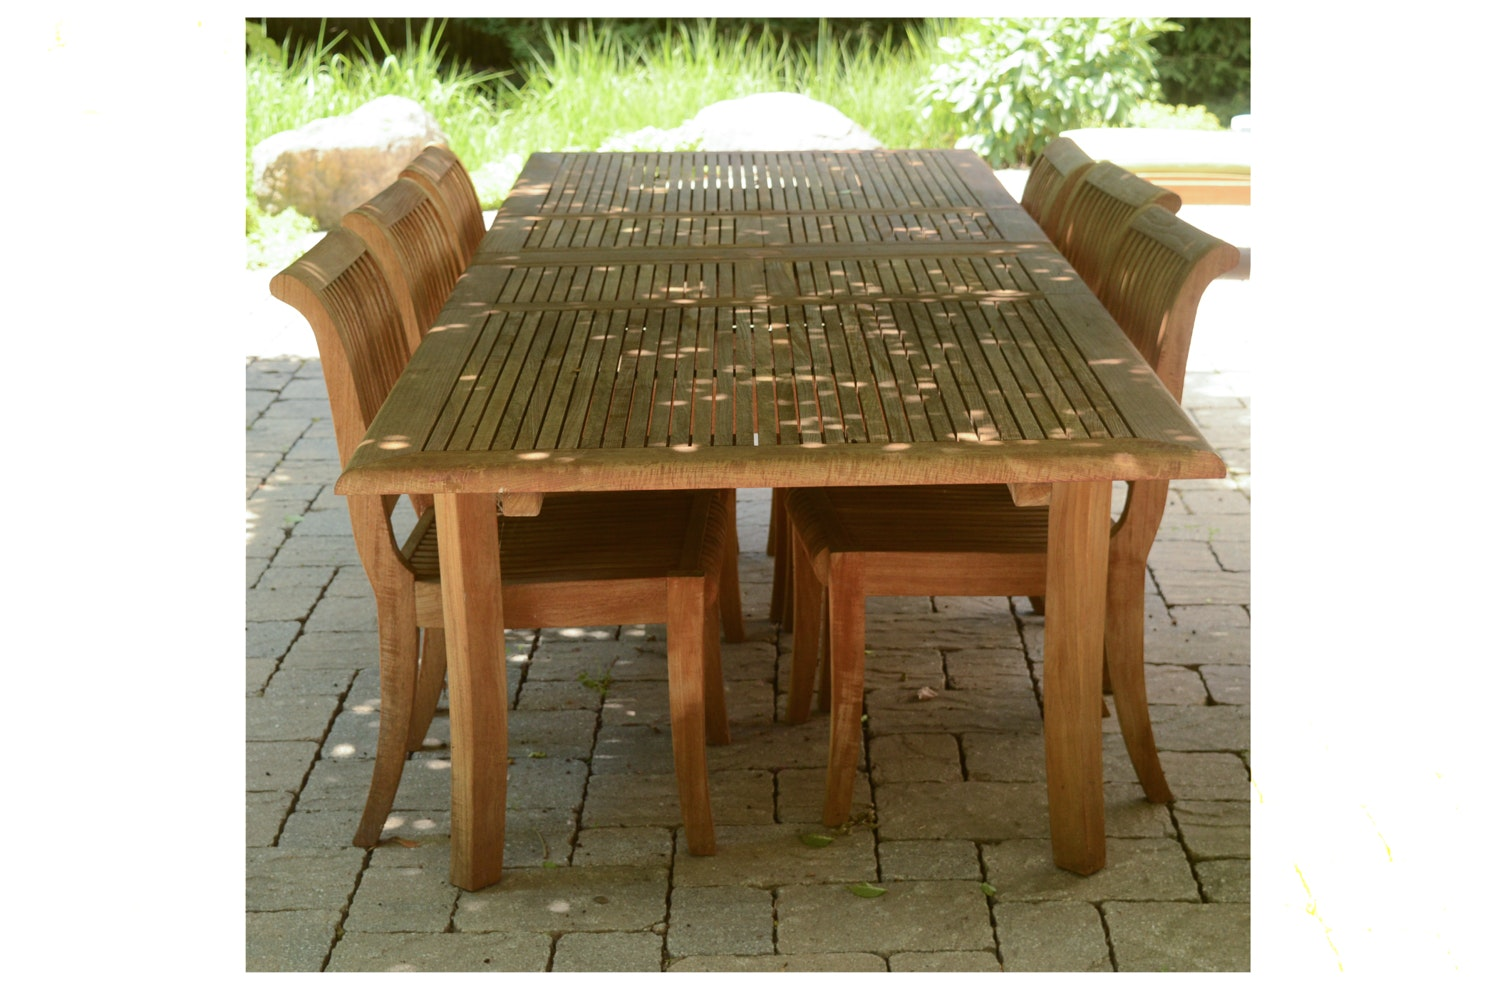 Teak Patio Dining Table and Chairs by Smith & Hawken